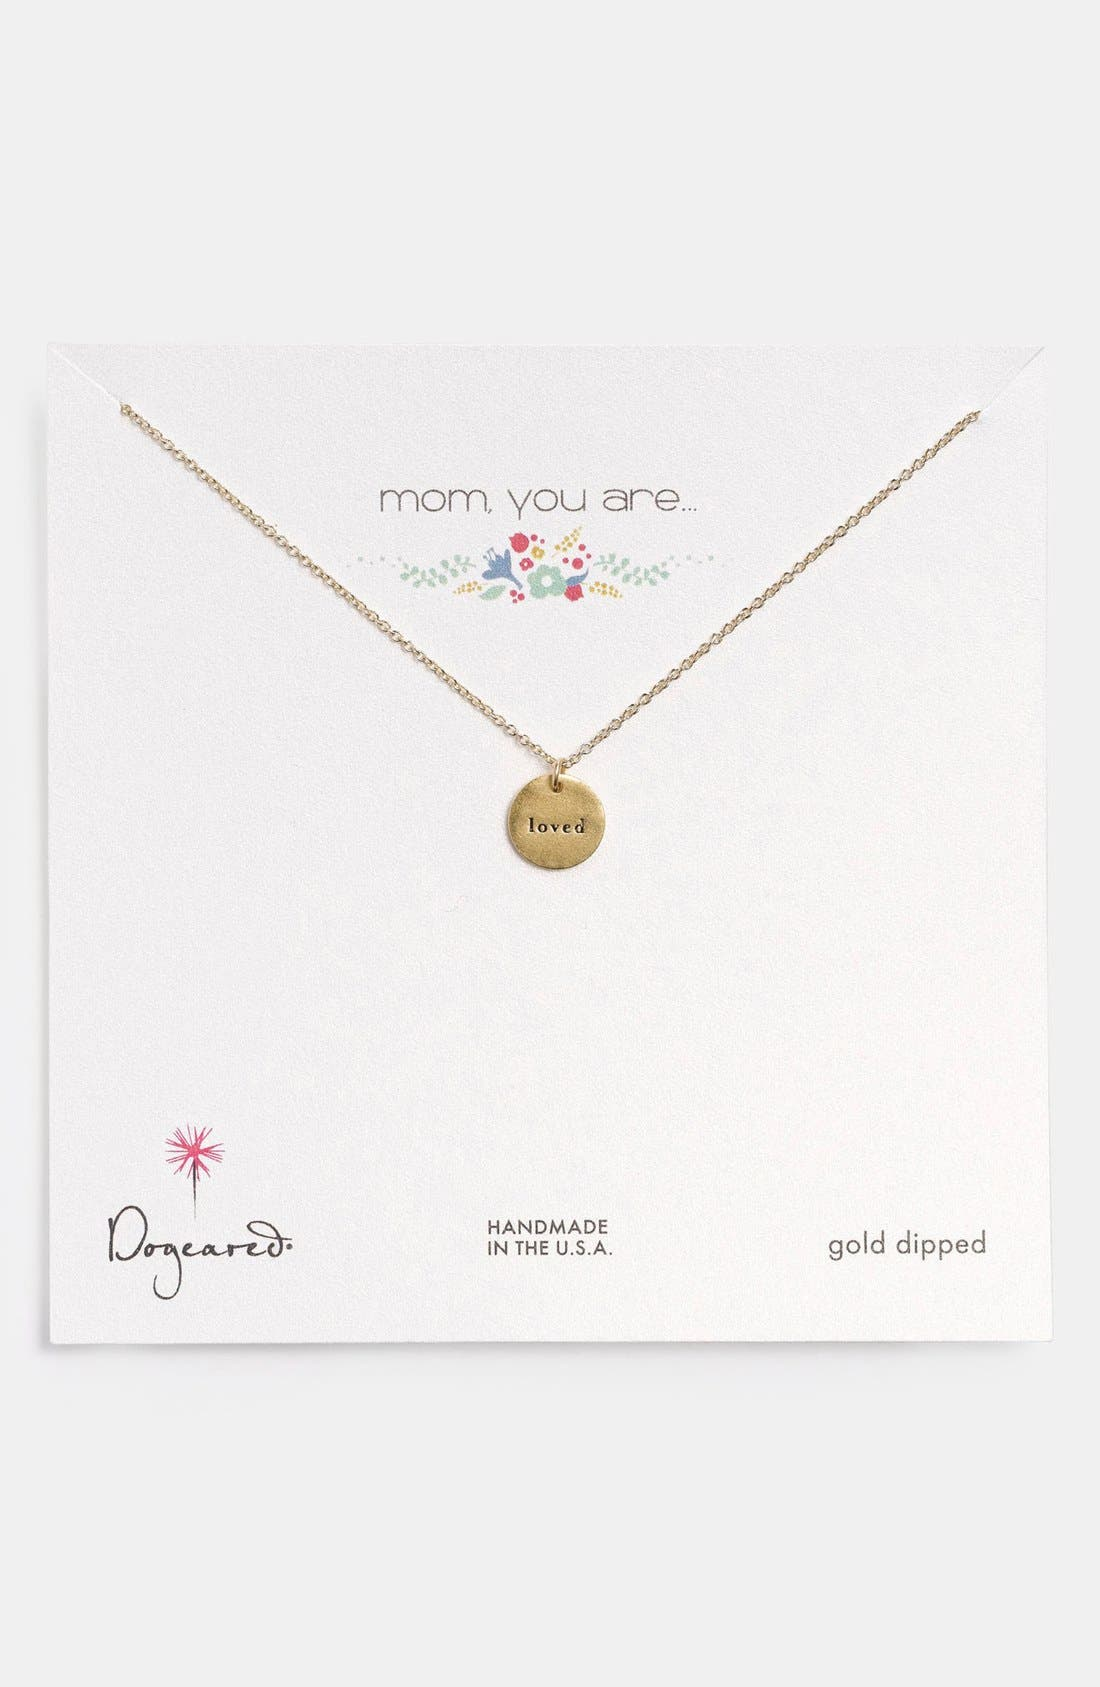 Alternate Image 1 Selected - Dogeared 'Mom, You Are Loved' Pendant Necklace